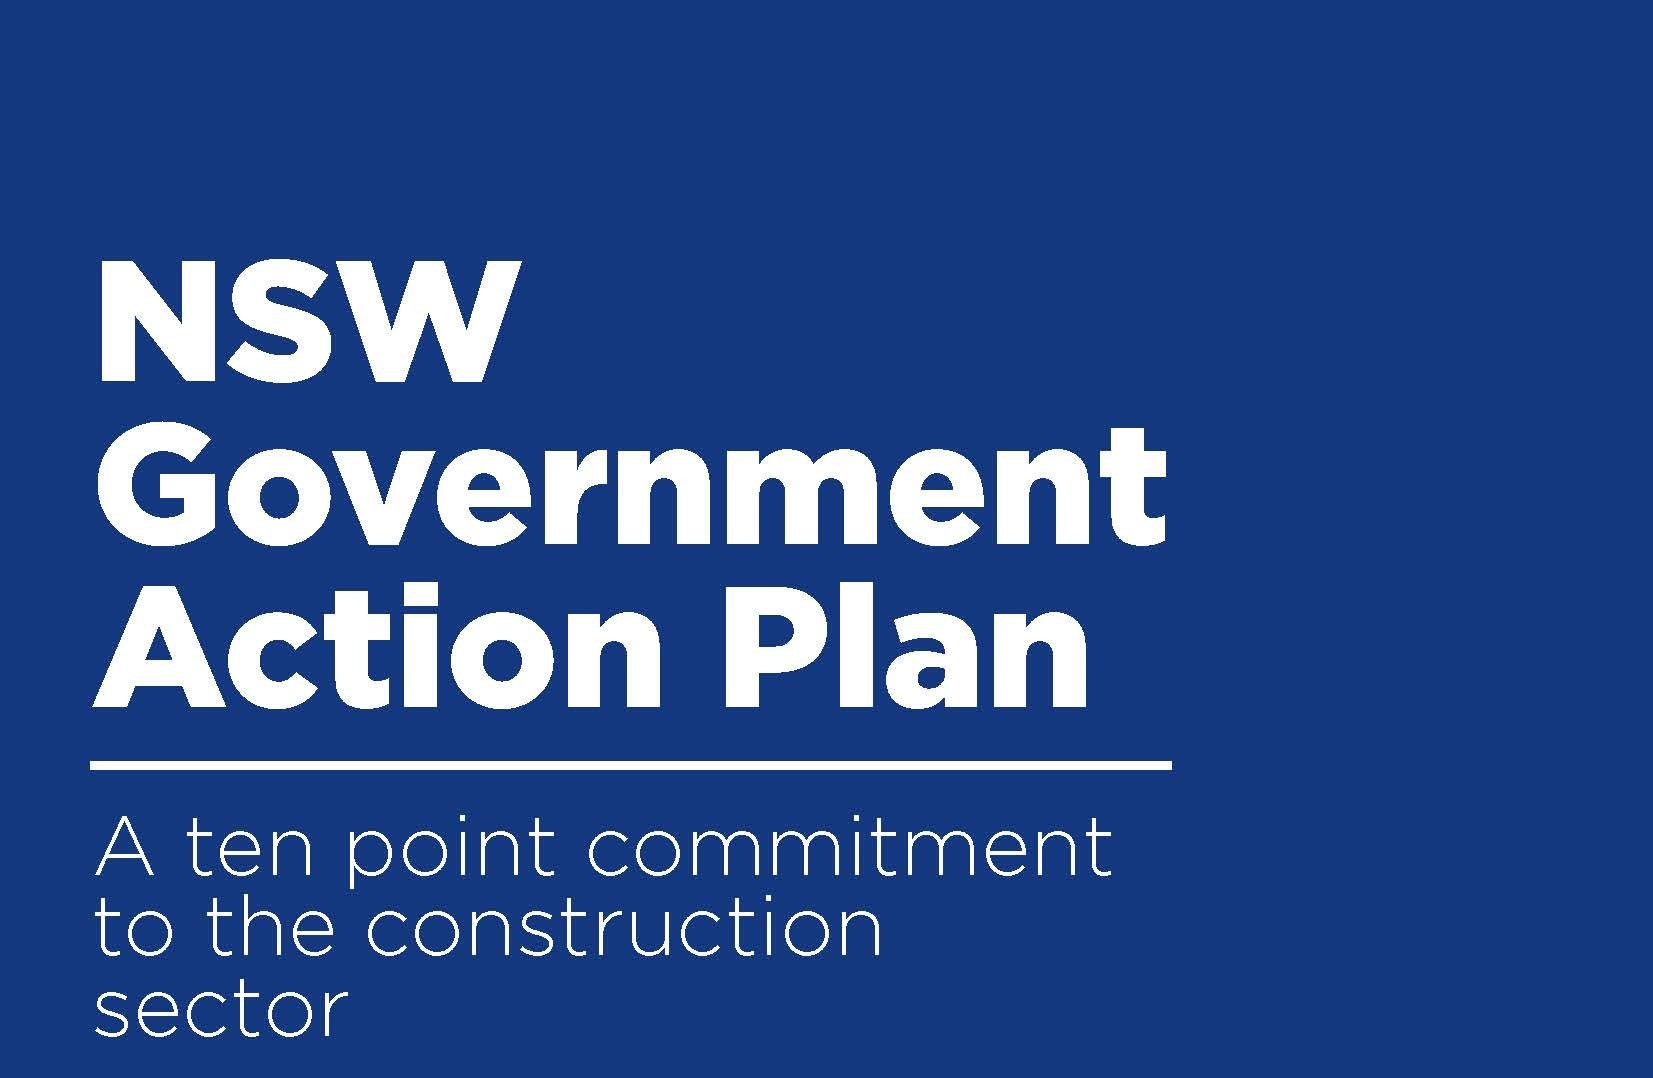 Cover page for the 10 point commitment to the construction industry action plan